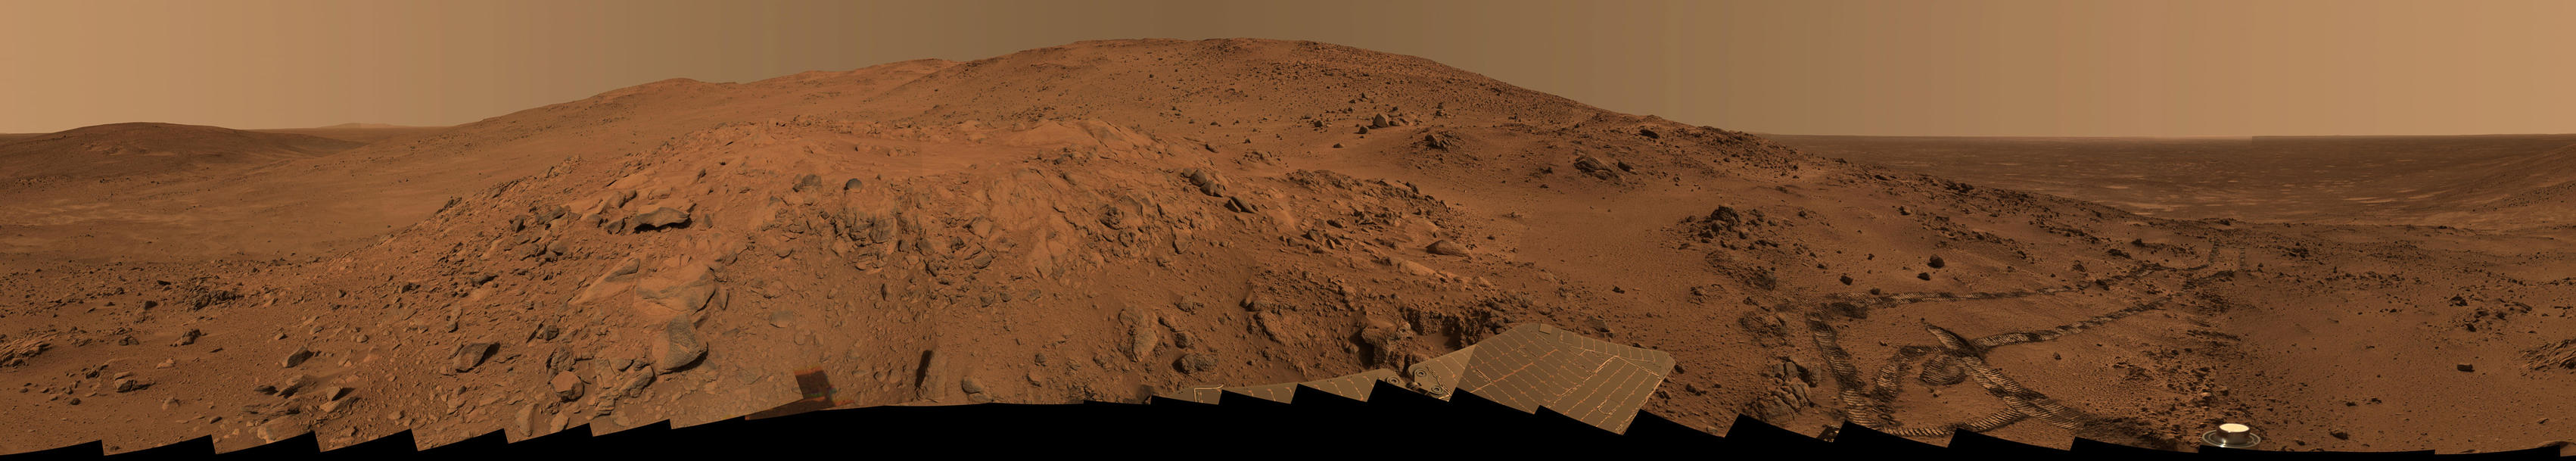 "This is the Spirit panoramic camera's ""Lookout"" panorama, acquired on the rover's 410th to 413th martian days, or sols (Feb. 27 to Mar. 2, 2005)."